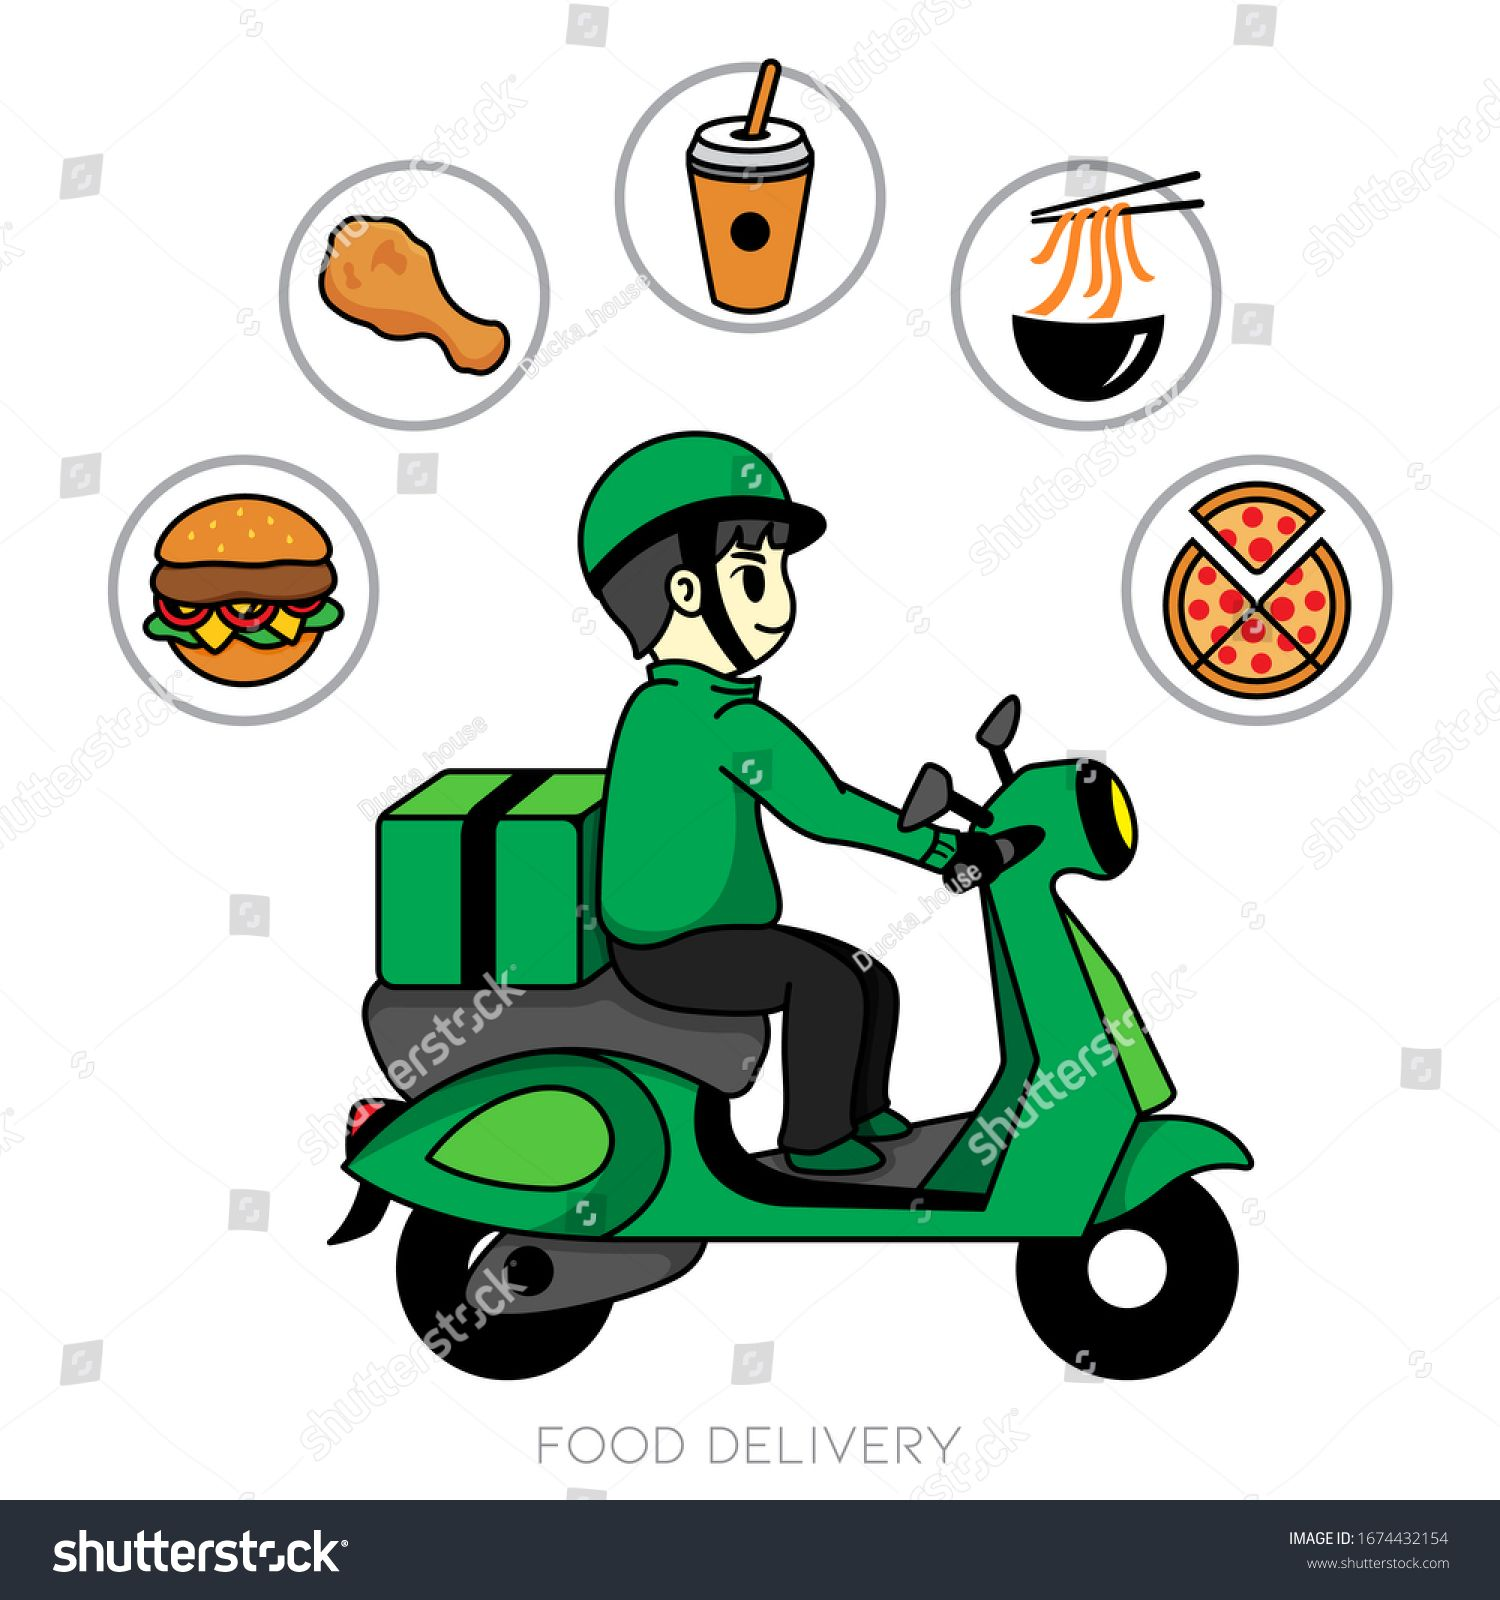 Food Delivery Bike Icon Vector Motorcycle Service Icon Food